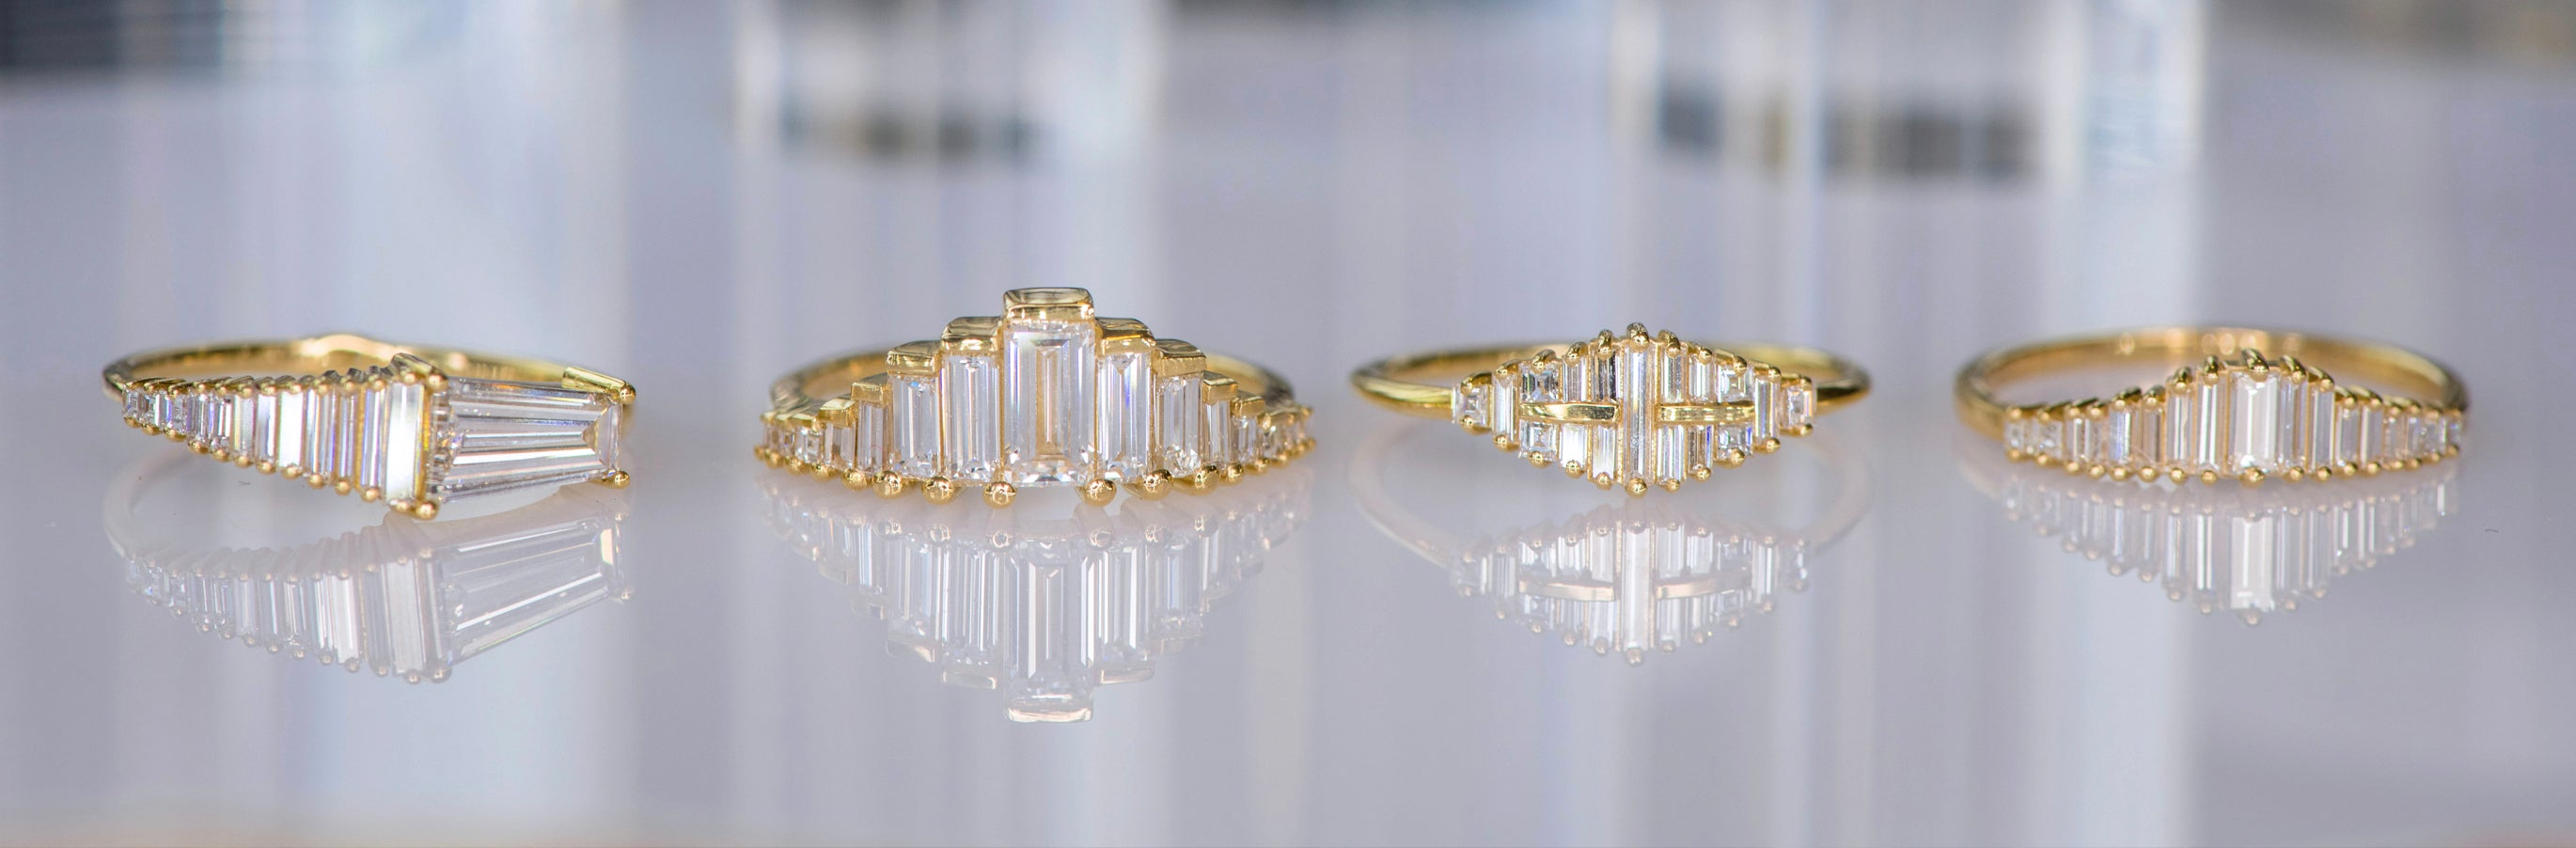 Engagement and wedding rings collection inspired by the elegant and glamorous art deco style